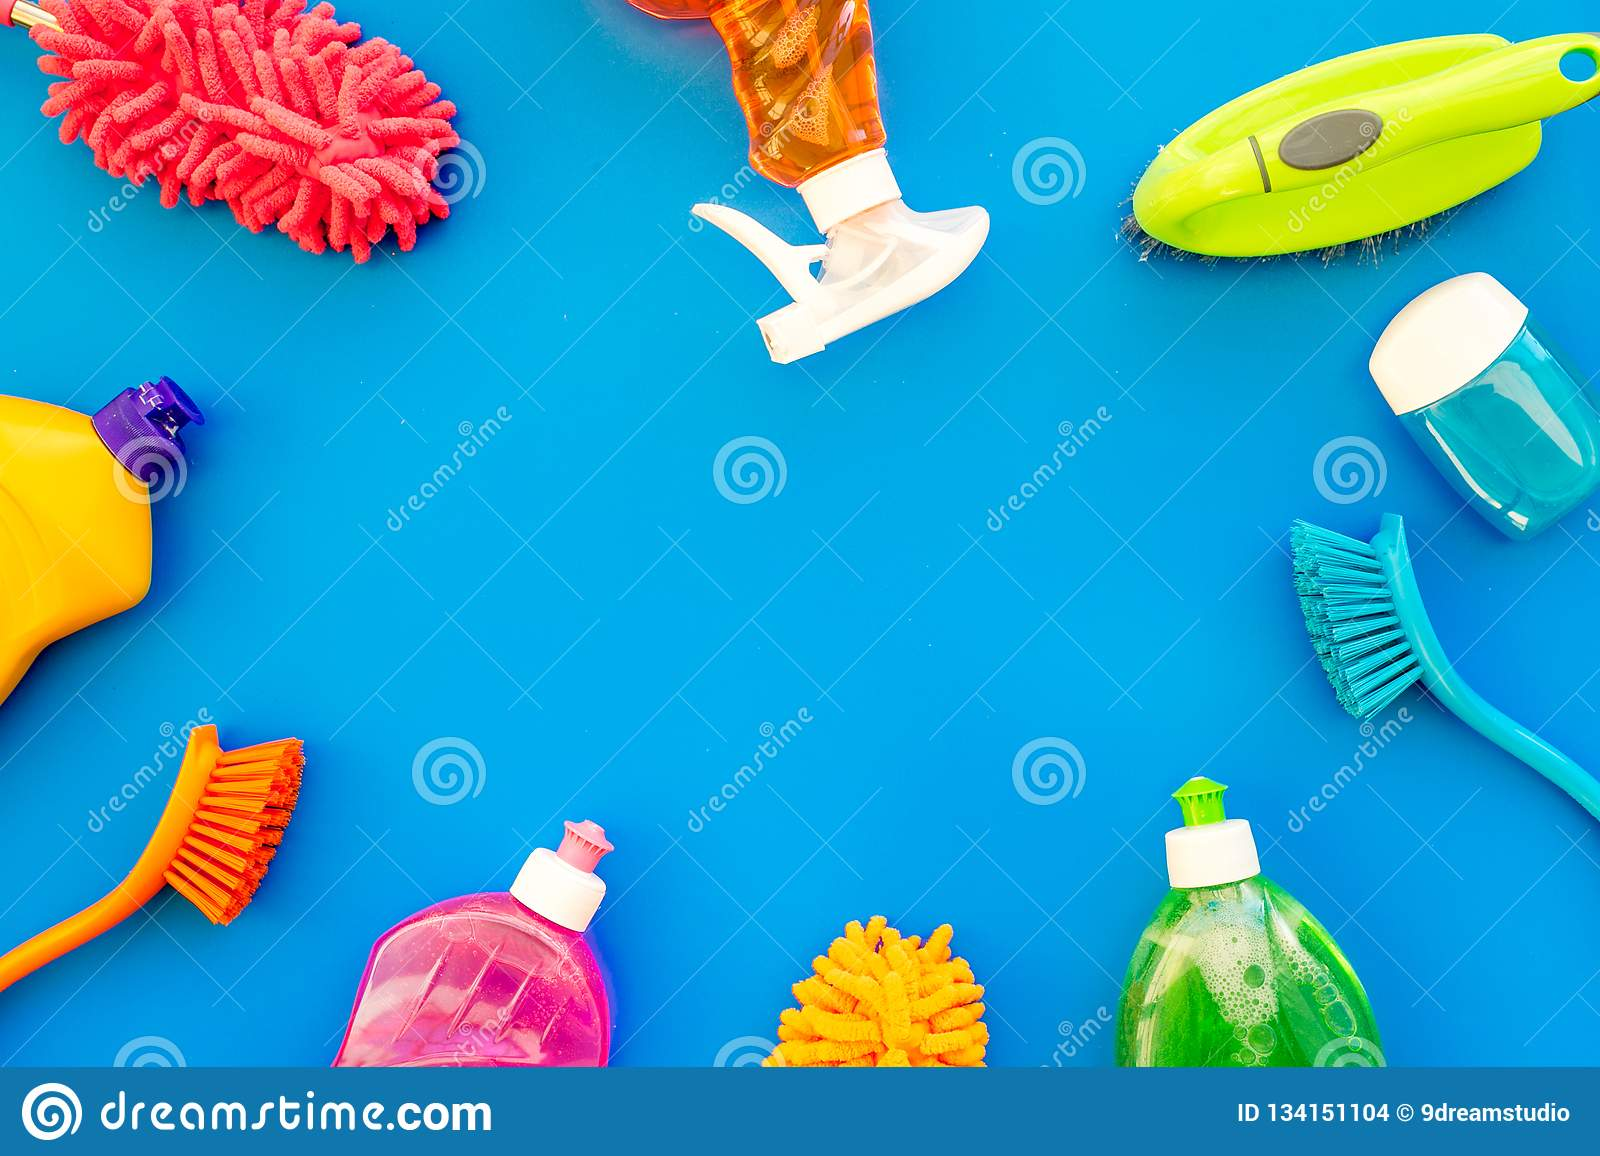 Housekeeping set. Detergents, soap, cleaners and brush for housecleaning on blue background top view mock-up